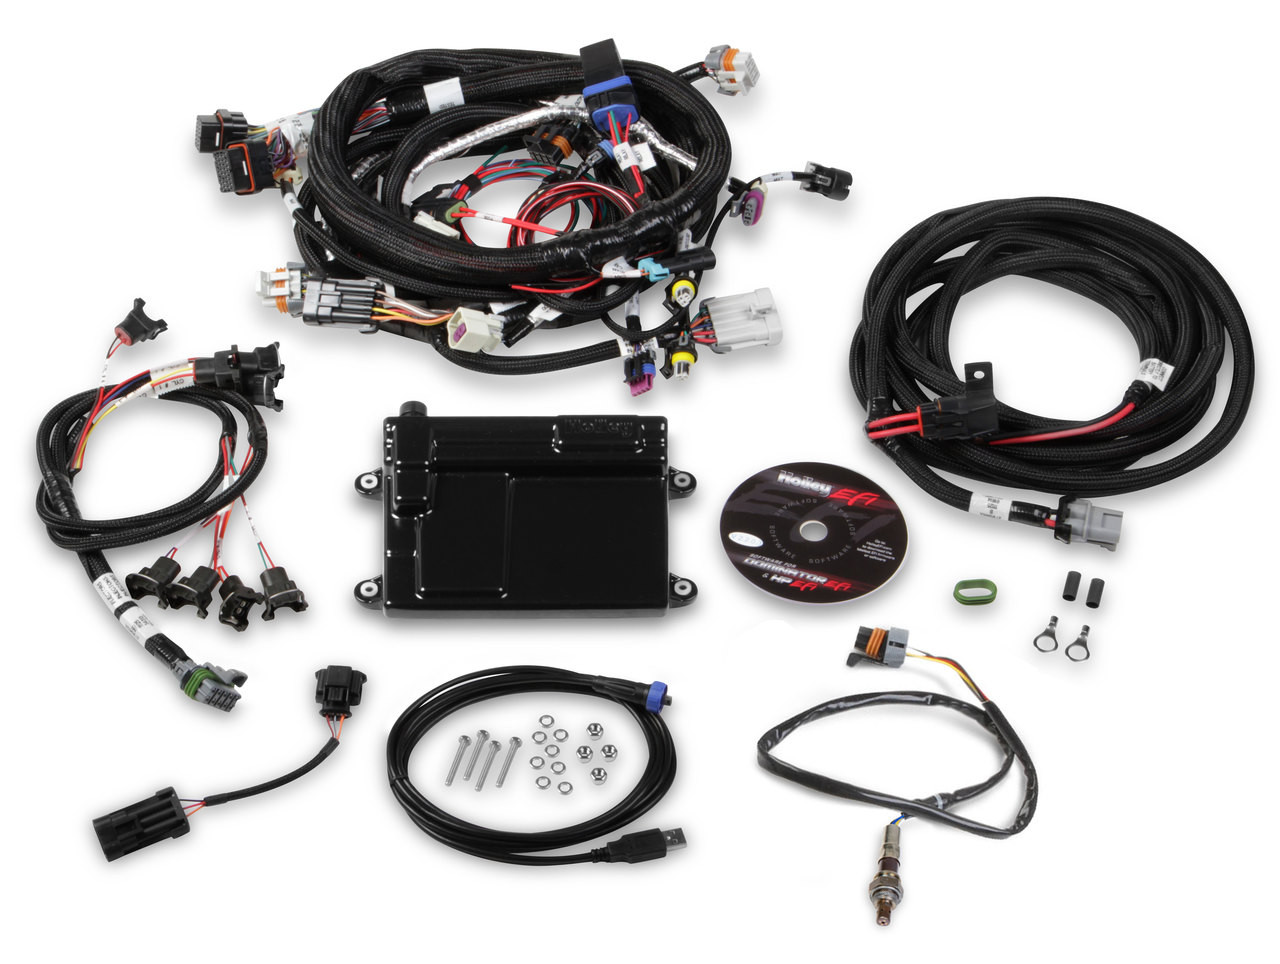 hight resolution of holley hp efi plug and play ecu and harness kit for gm ls2 ls3